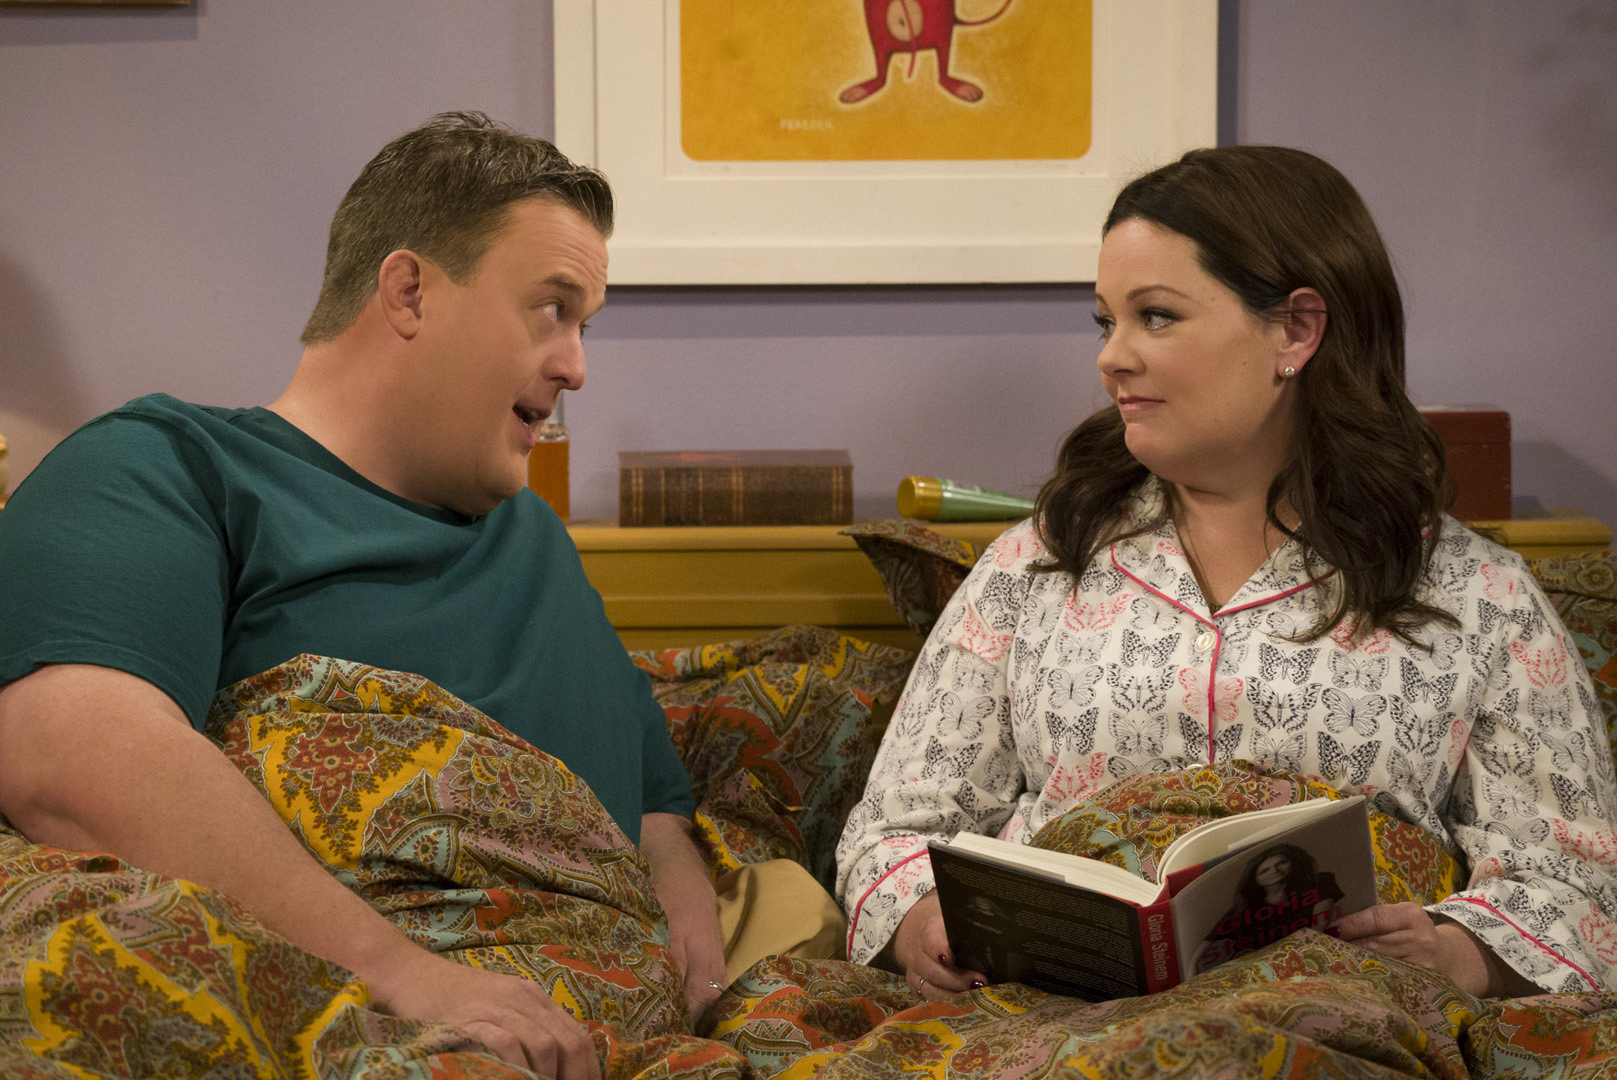 Mike and Molly talk through some recent issues before hitting the sack.